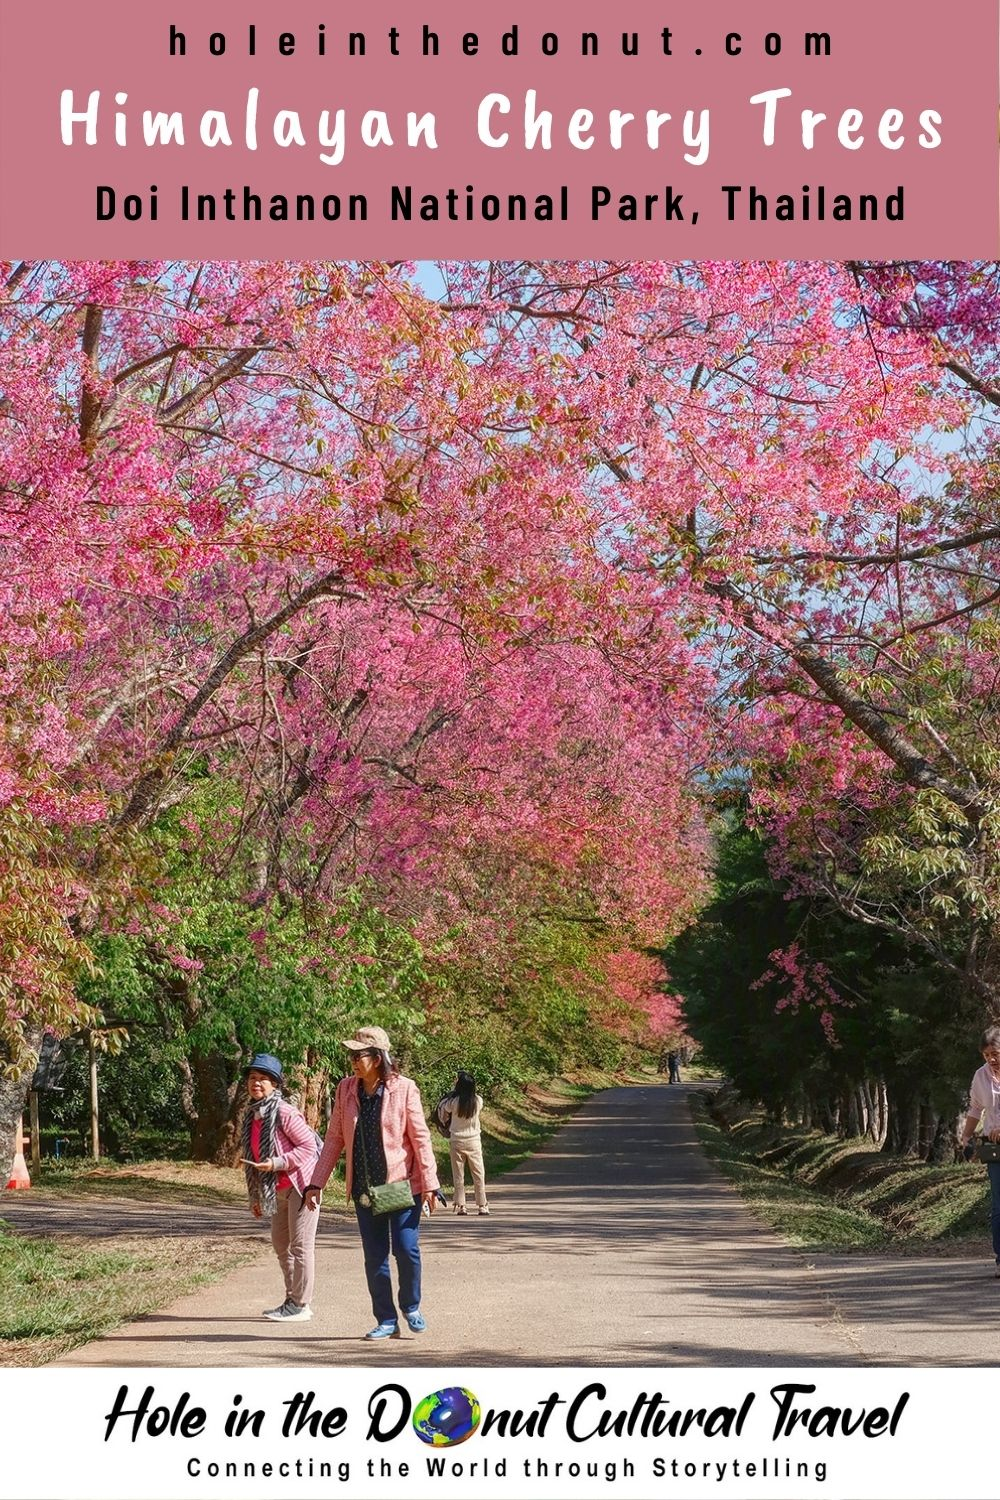 The Cherry Tree Blossoms of Thailand